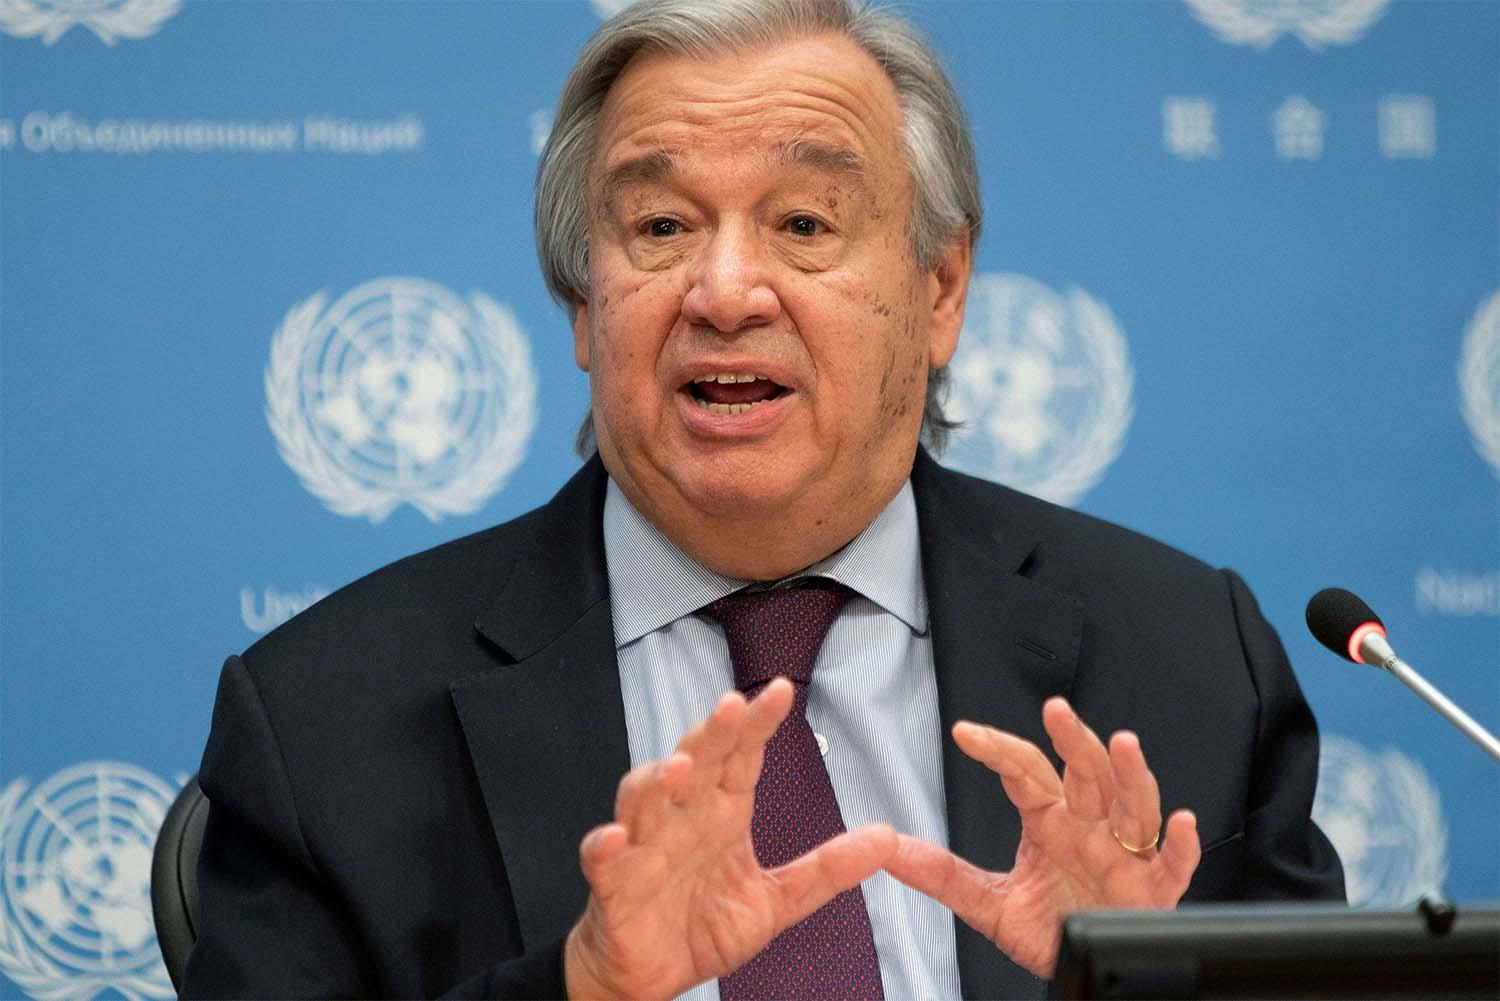 COVID-19 Vaccines Should Be 'Global Public Goods' – Guterres